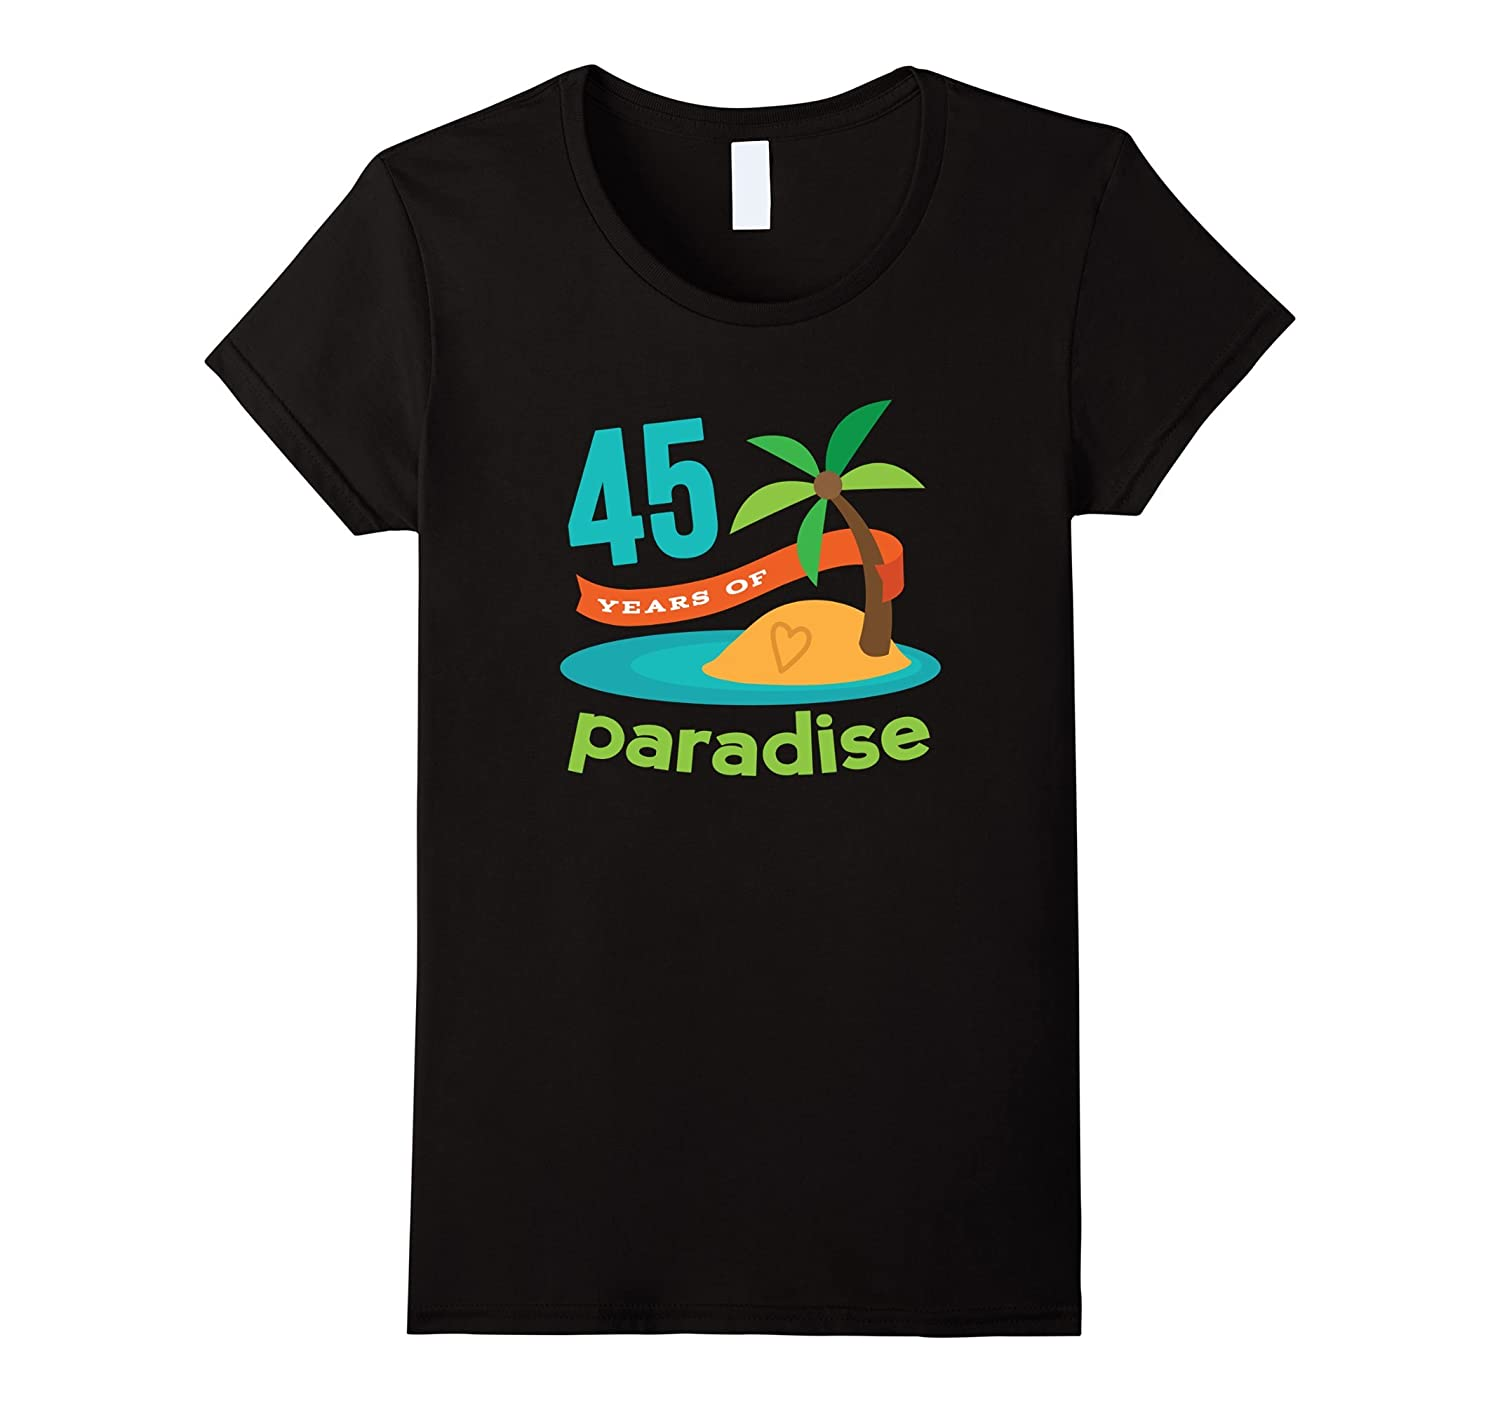 45th Anniversary Shirt Couples Tropical Party Tee